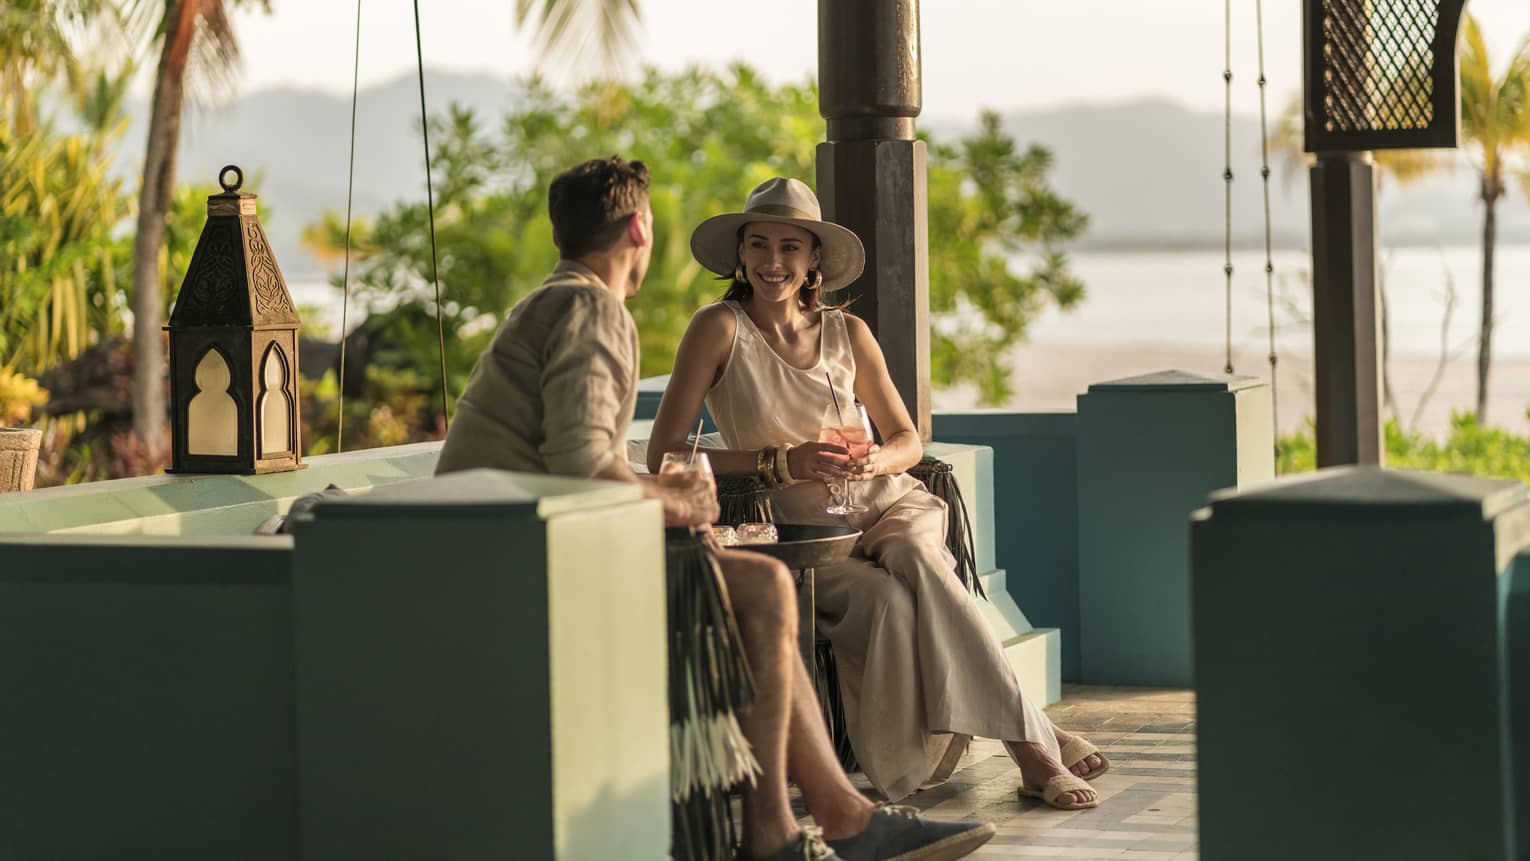 A man and woman are sitting in an outdoor Rhu Bar area overlooking the ocean holding cocktails